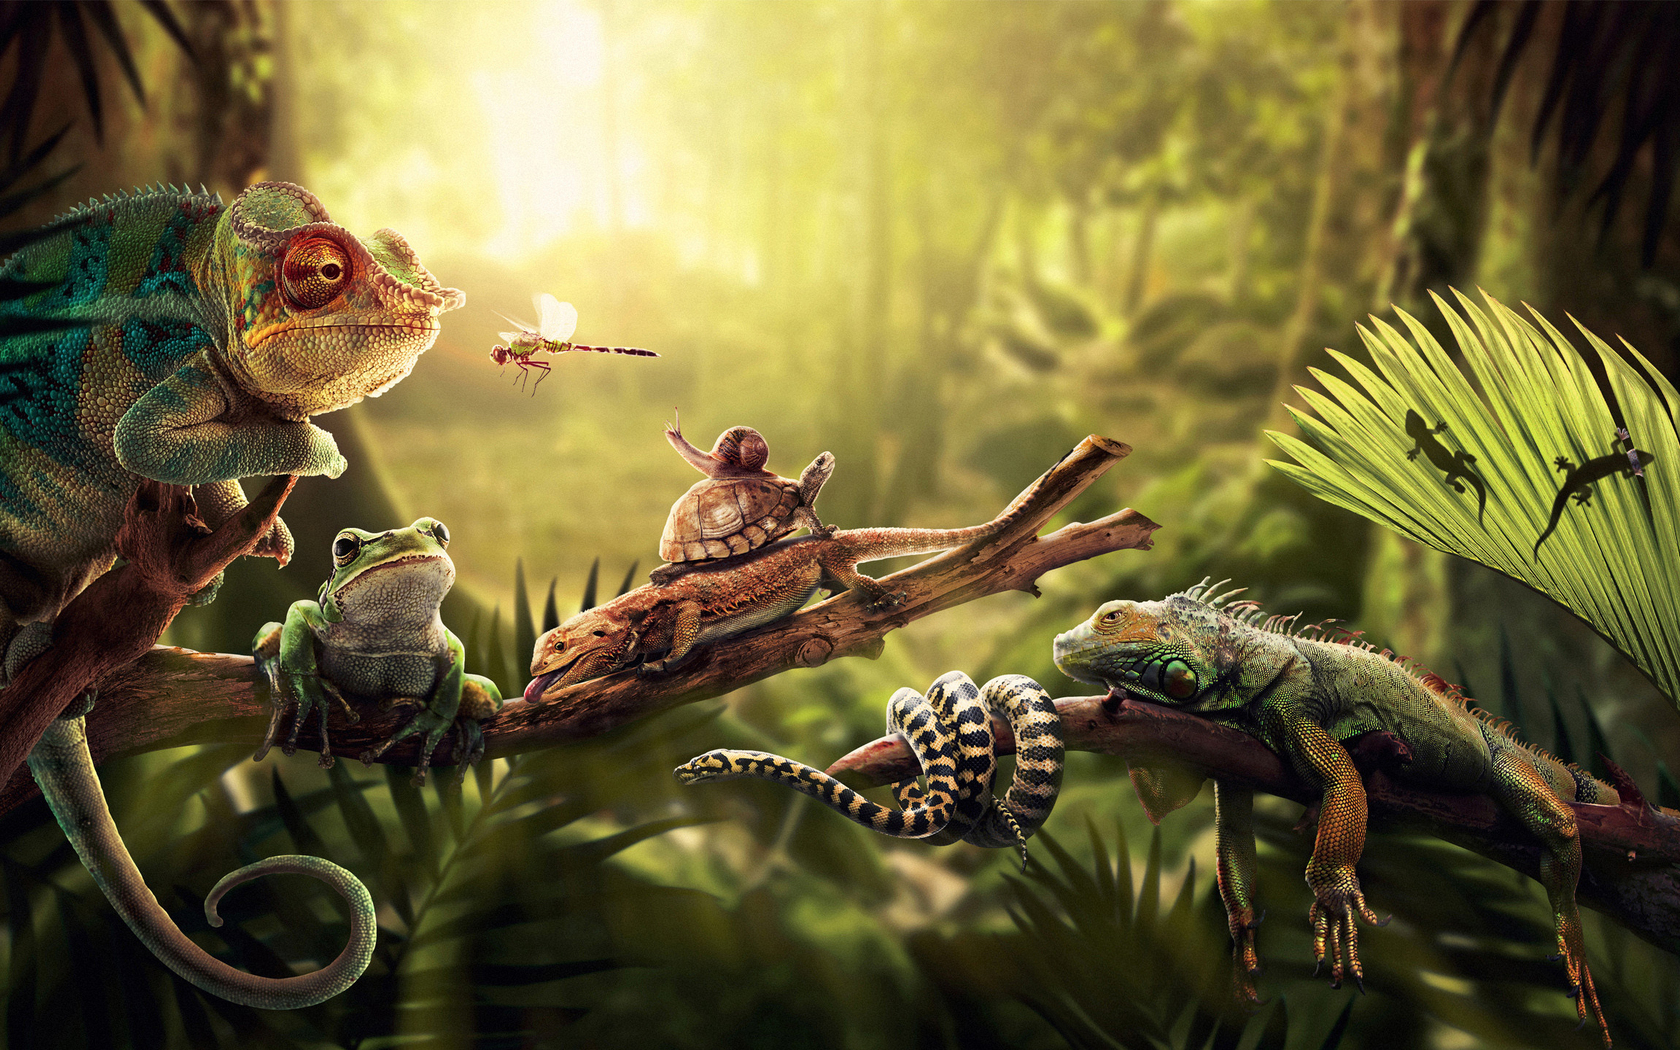 Funny 3d Animal Turtle Wallpapers Hd: Reptile Wallpaper And Background Image